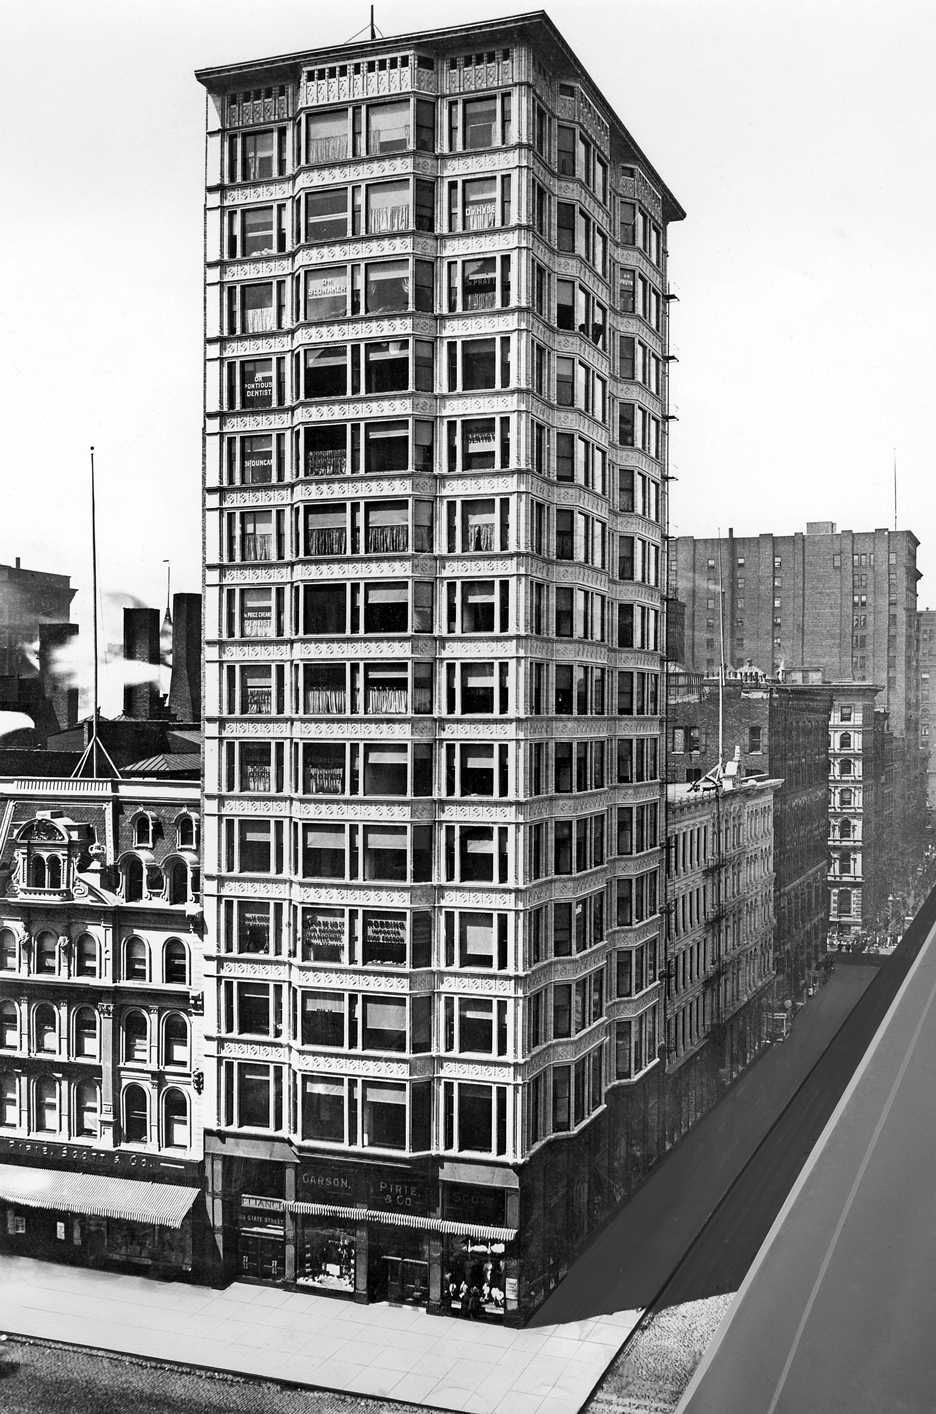 The Reliance Building by Atwood, Burnham & Co, North State Street, Chicago 1890-95